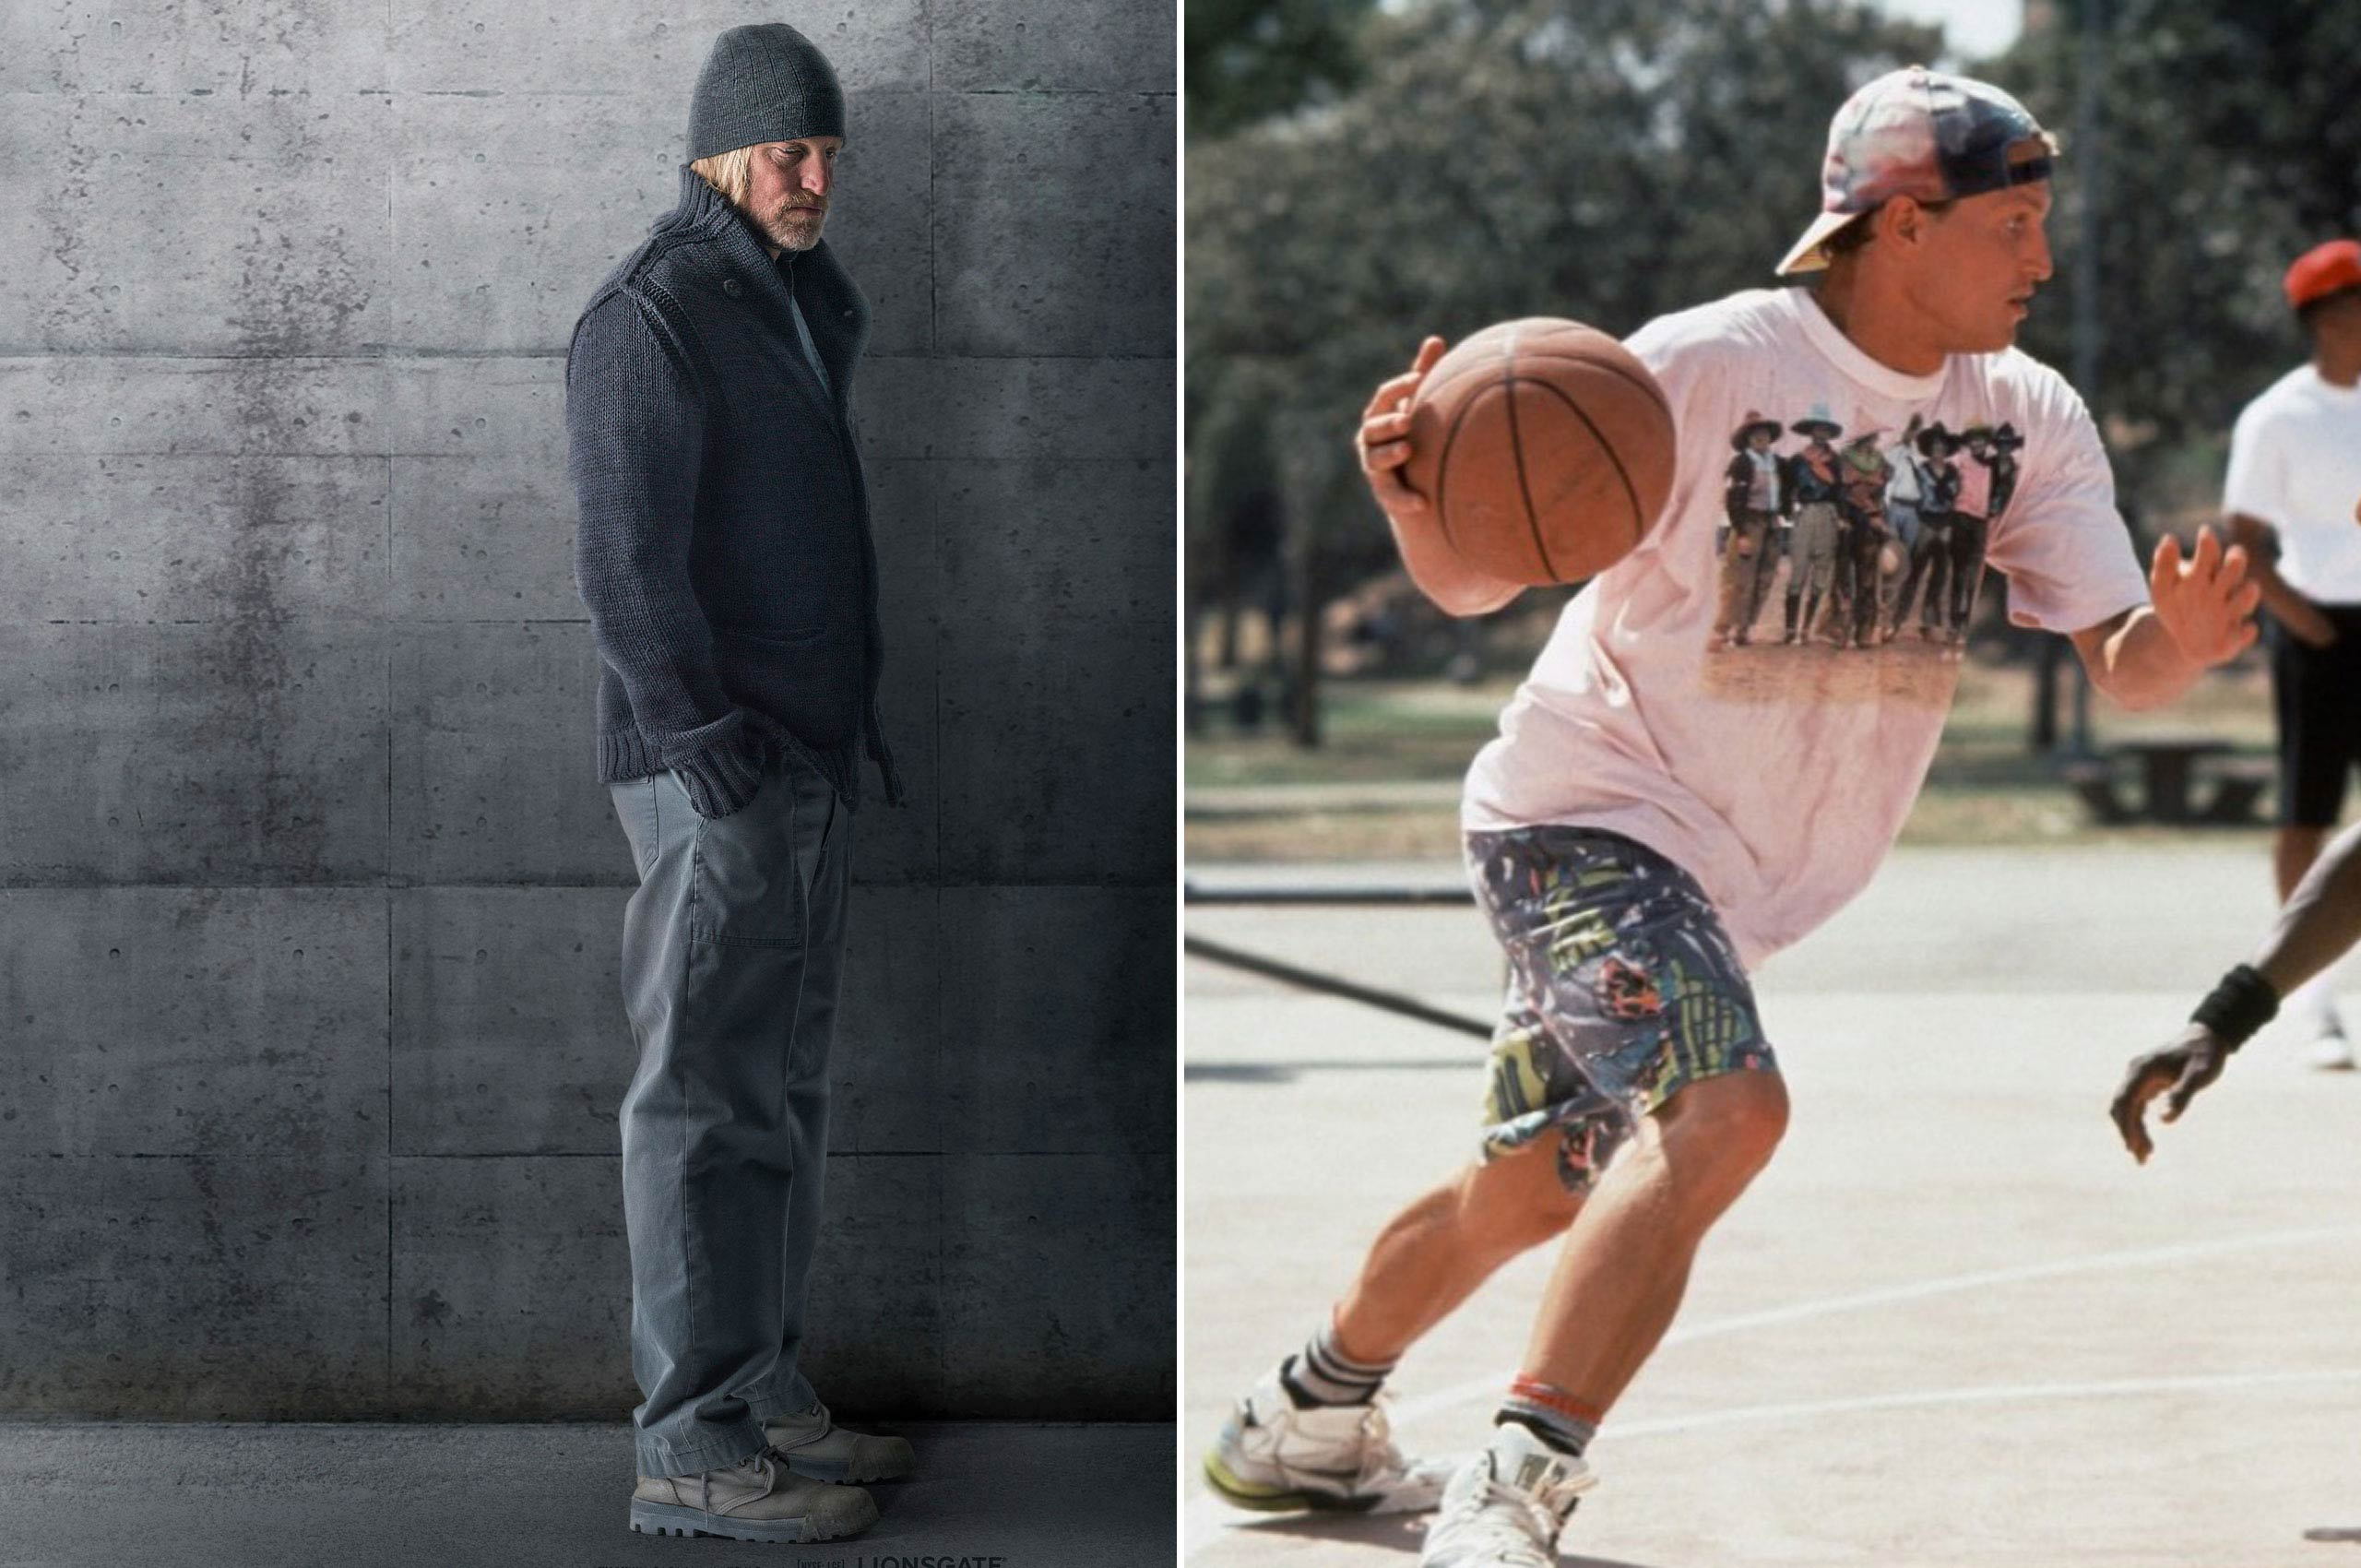 Woody Harrelson spends his time in the <i>Hunger Games</i> mentoring Katniss as former District 12 victor Haymitch Abernathy, but back in the day he spent his time schooling others in basketball as Billy Hoyle in the 1992 comedy <i>White Men Can't Jump</i>.